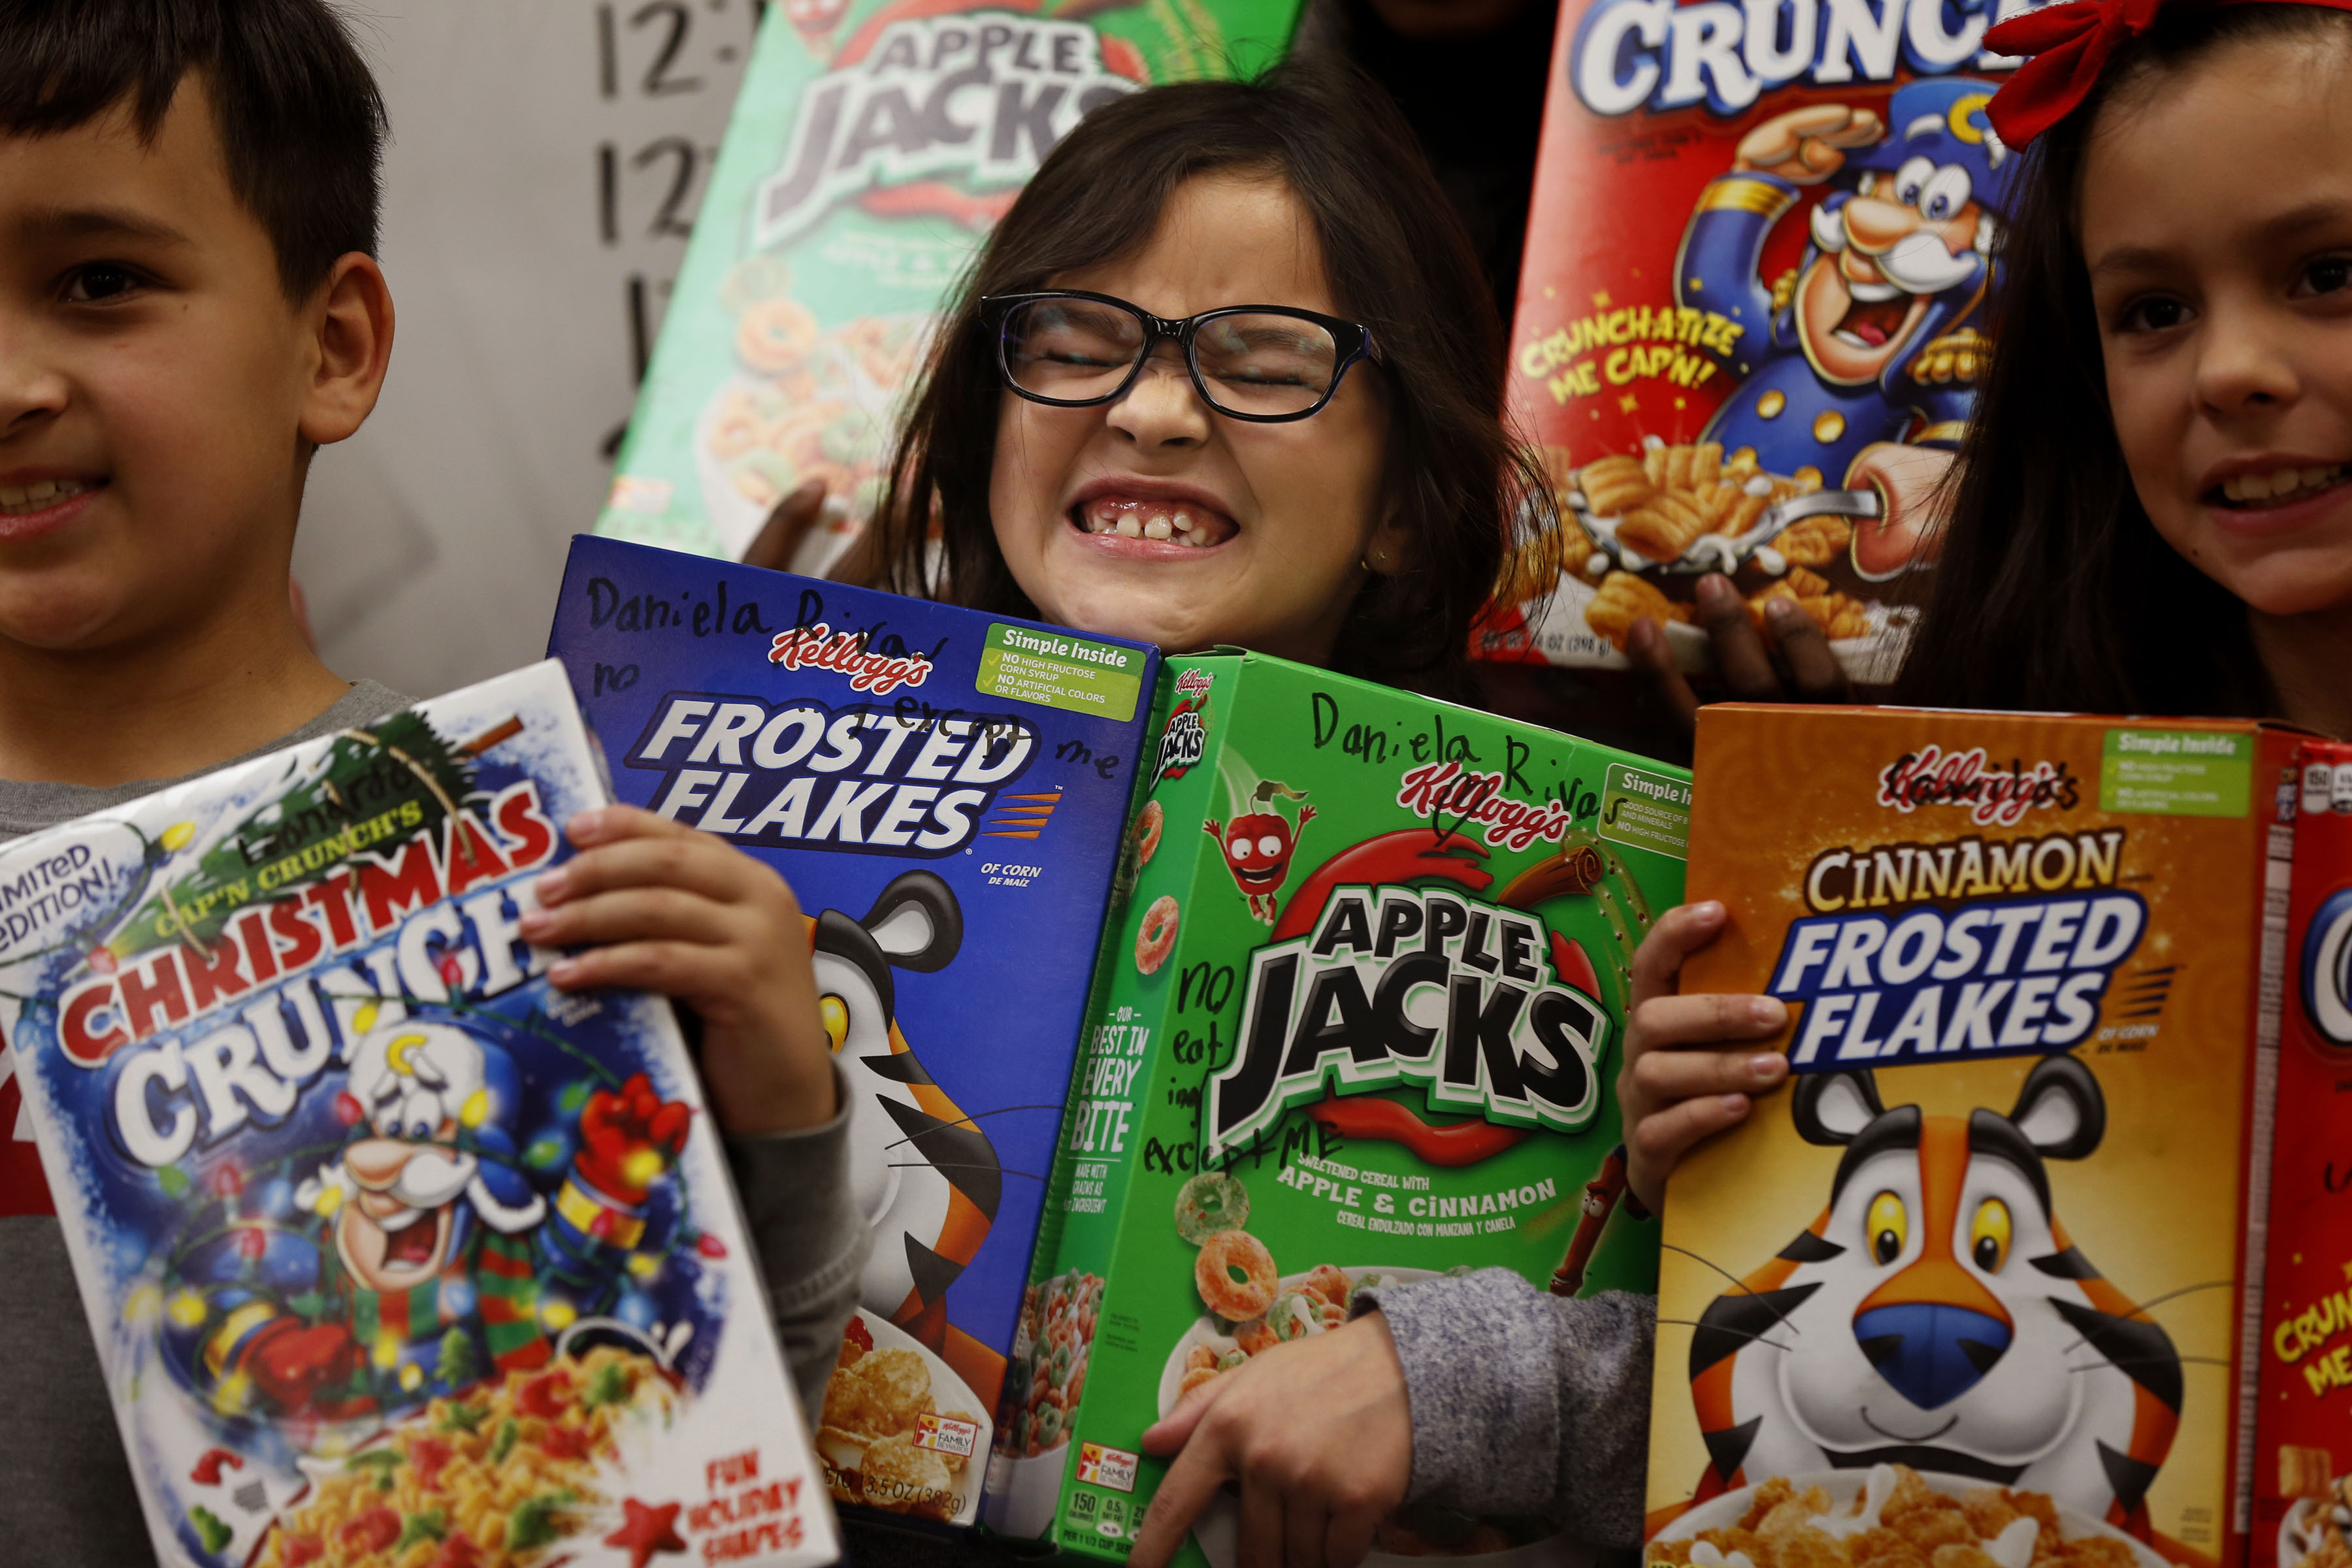 Third-grader Daniela Rivas, center, and her classmates display their two boxes of cereal that they were given at Oquirrh Elementary School in West Jordan on Thursday, Dec. 19, 2019.Principal Shauna Worthington surprised her students with the gift of breakfast over the holiday break, giving out 15,000 boxes of cereal at the school.